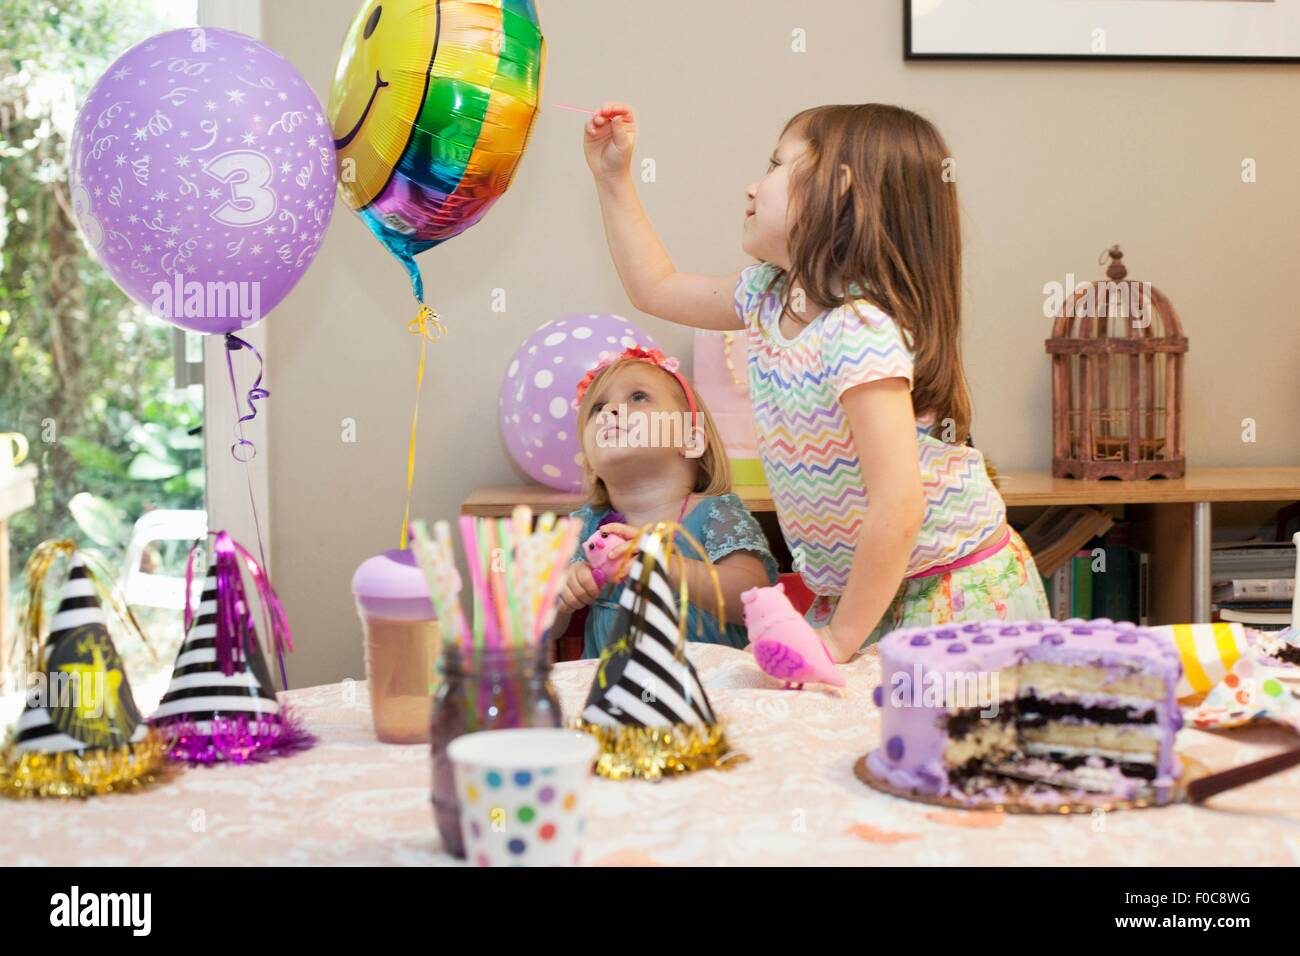 Two girls sitting at birthday party table with cake playing with balloons - Stock Image